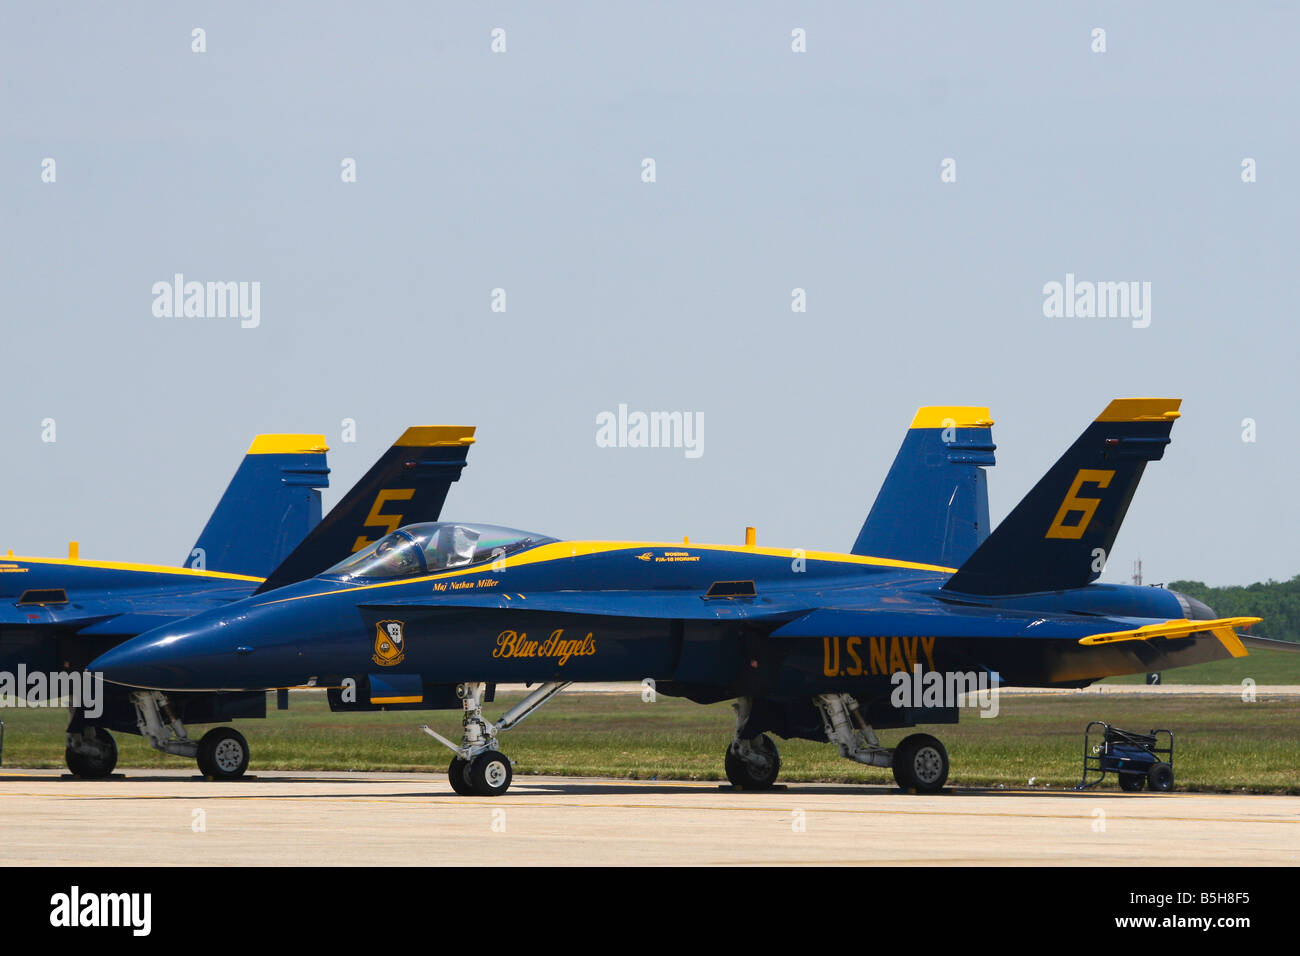 The elite U.S. Navy Blue Angels prepare for an afternoon of aerobatics at the 2008 Joint Service Air Show in Maryland. - Stock Image